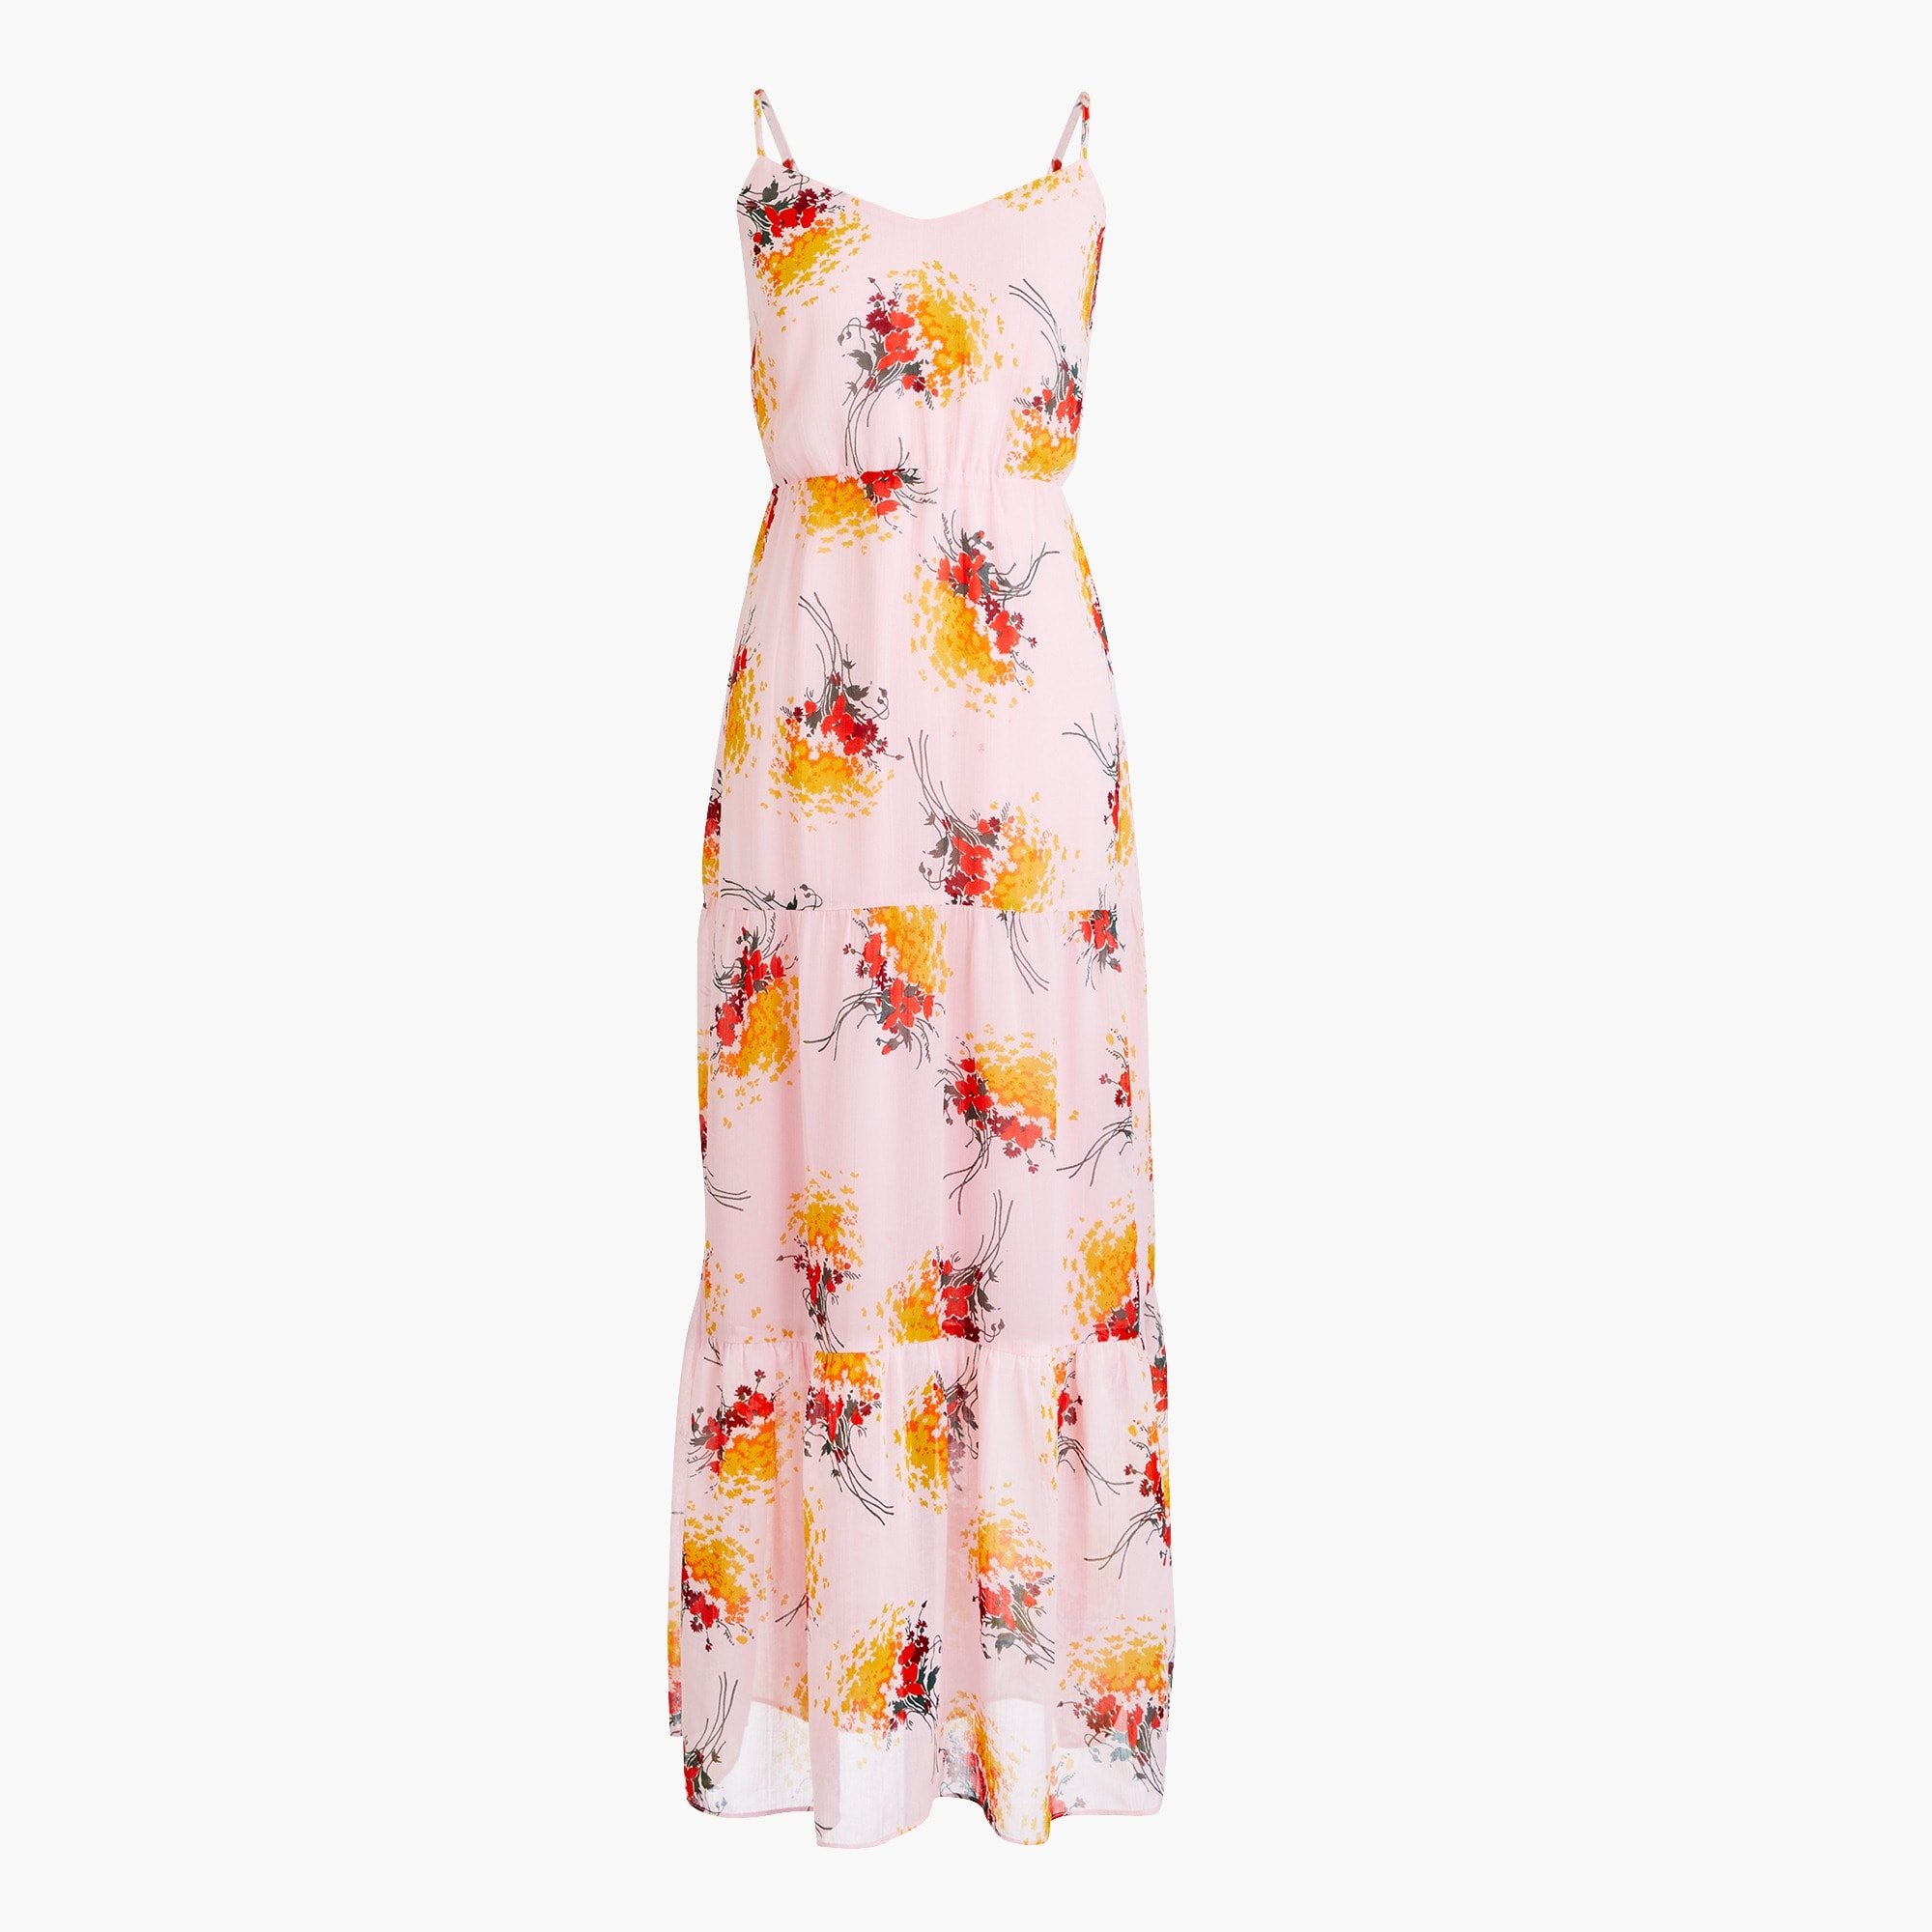 women's tall j.crew mercantile tiered maxi dress in sunburst bouquet print - women's casual dresses